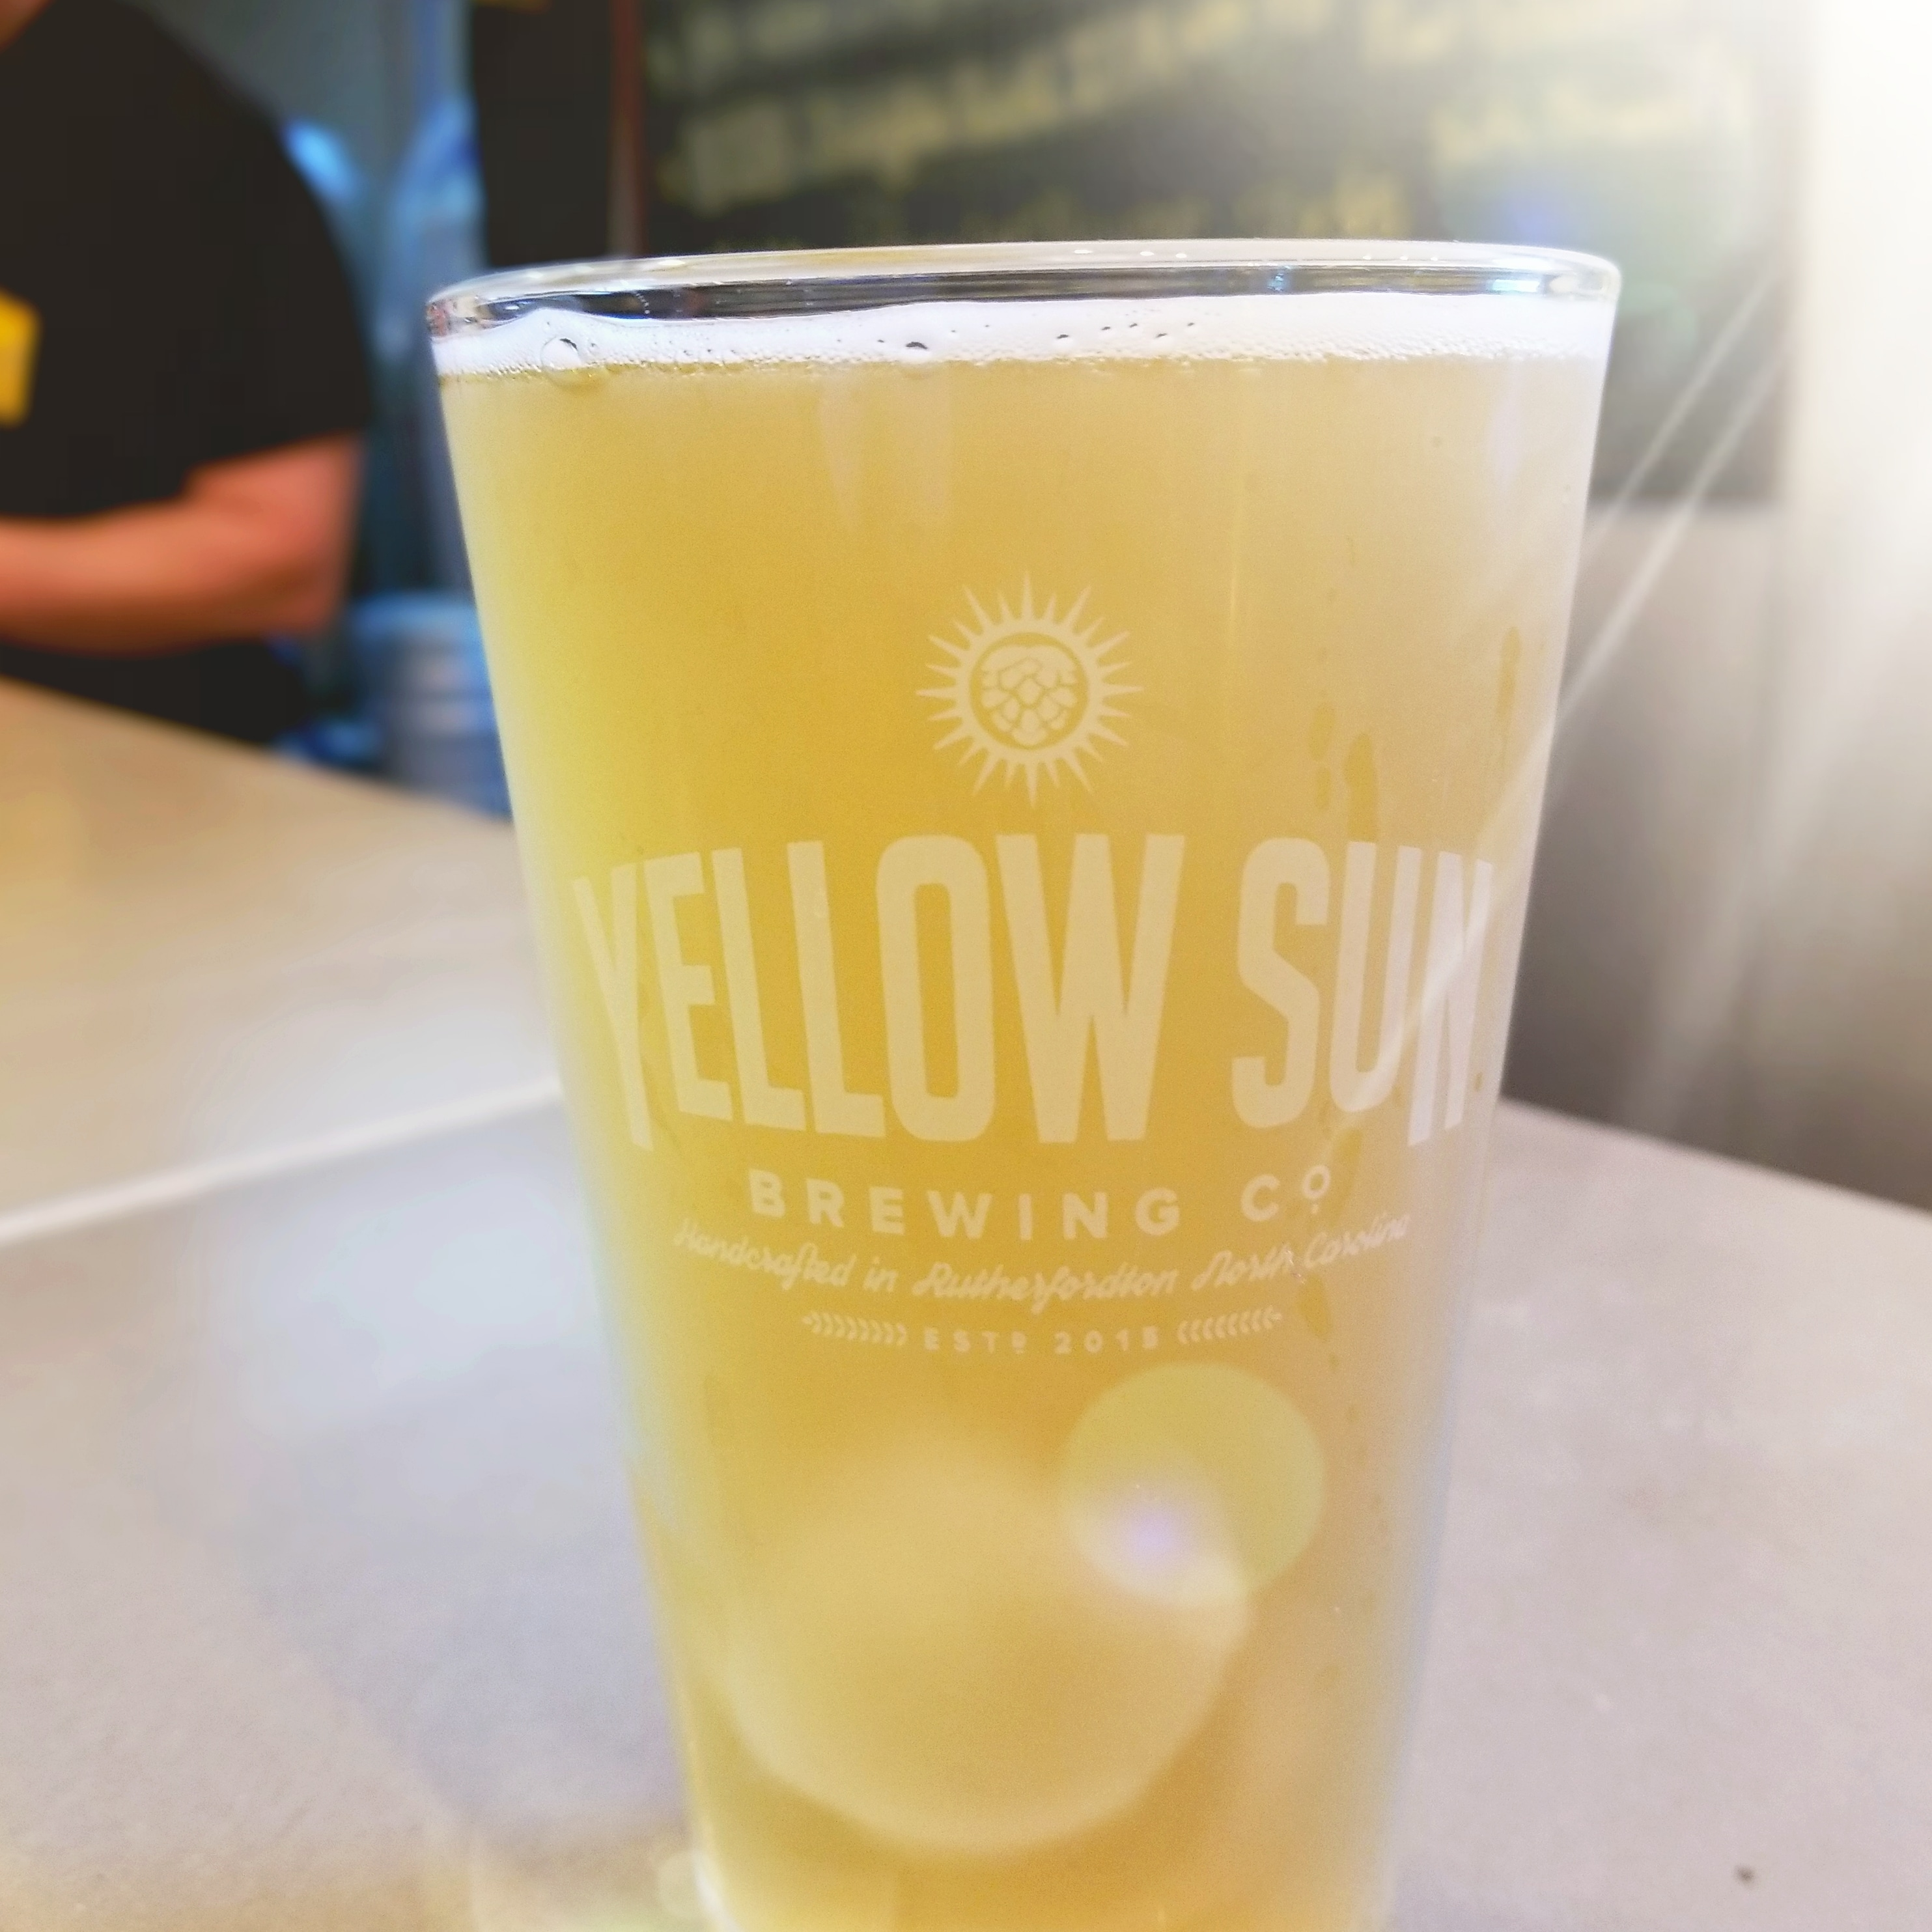 Yellow Sun Brewery NC Beer